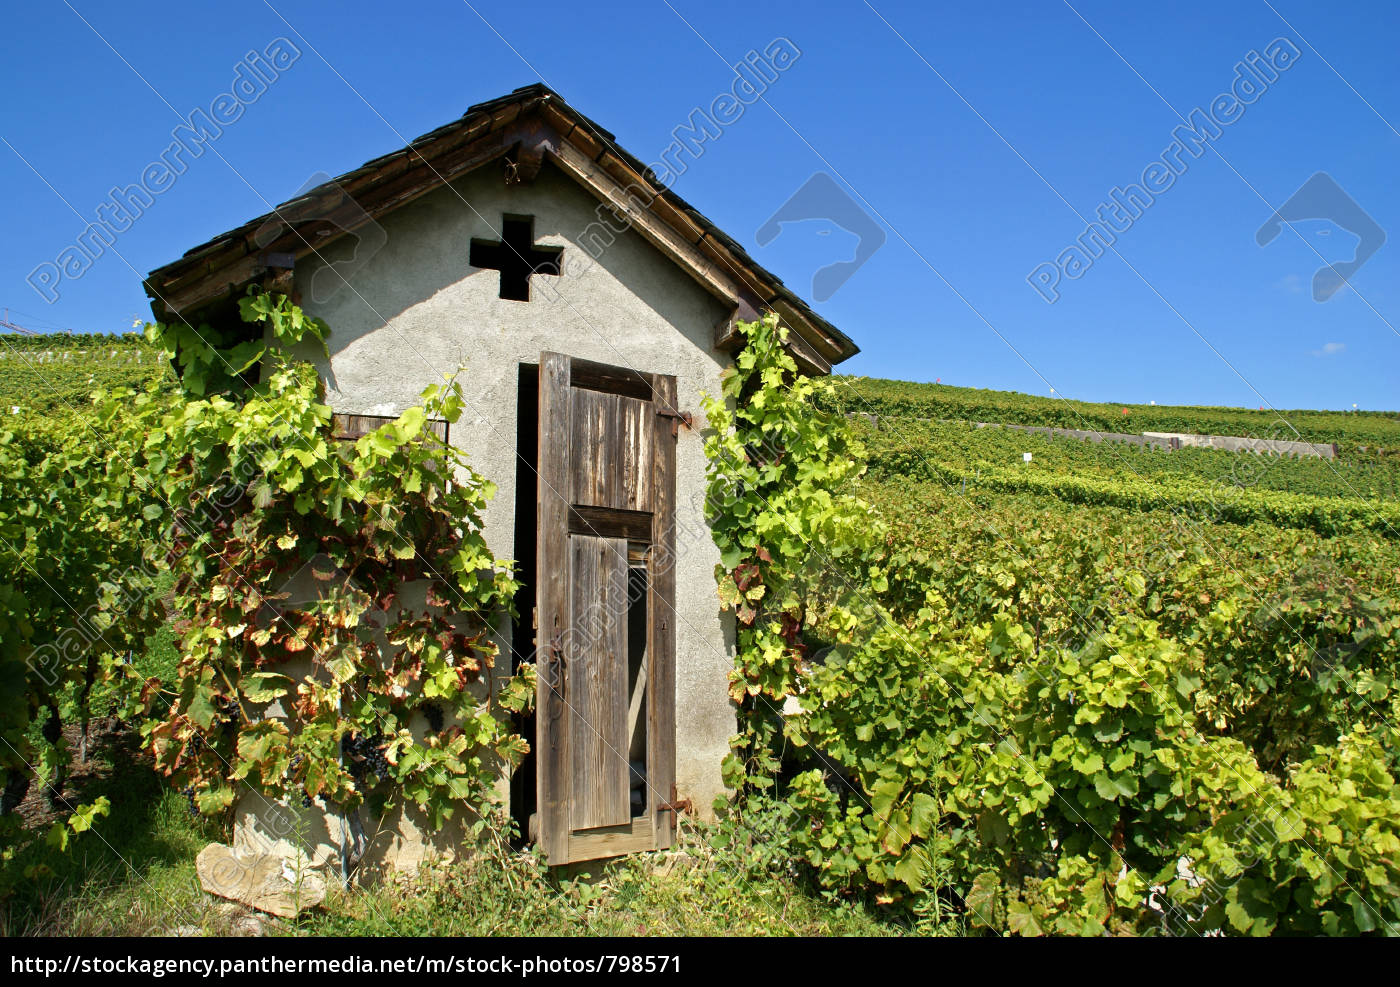 in, the, vineyard - 798571